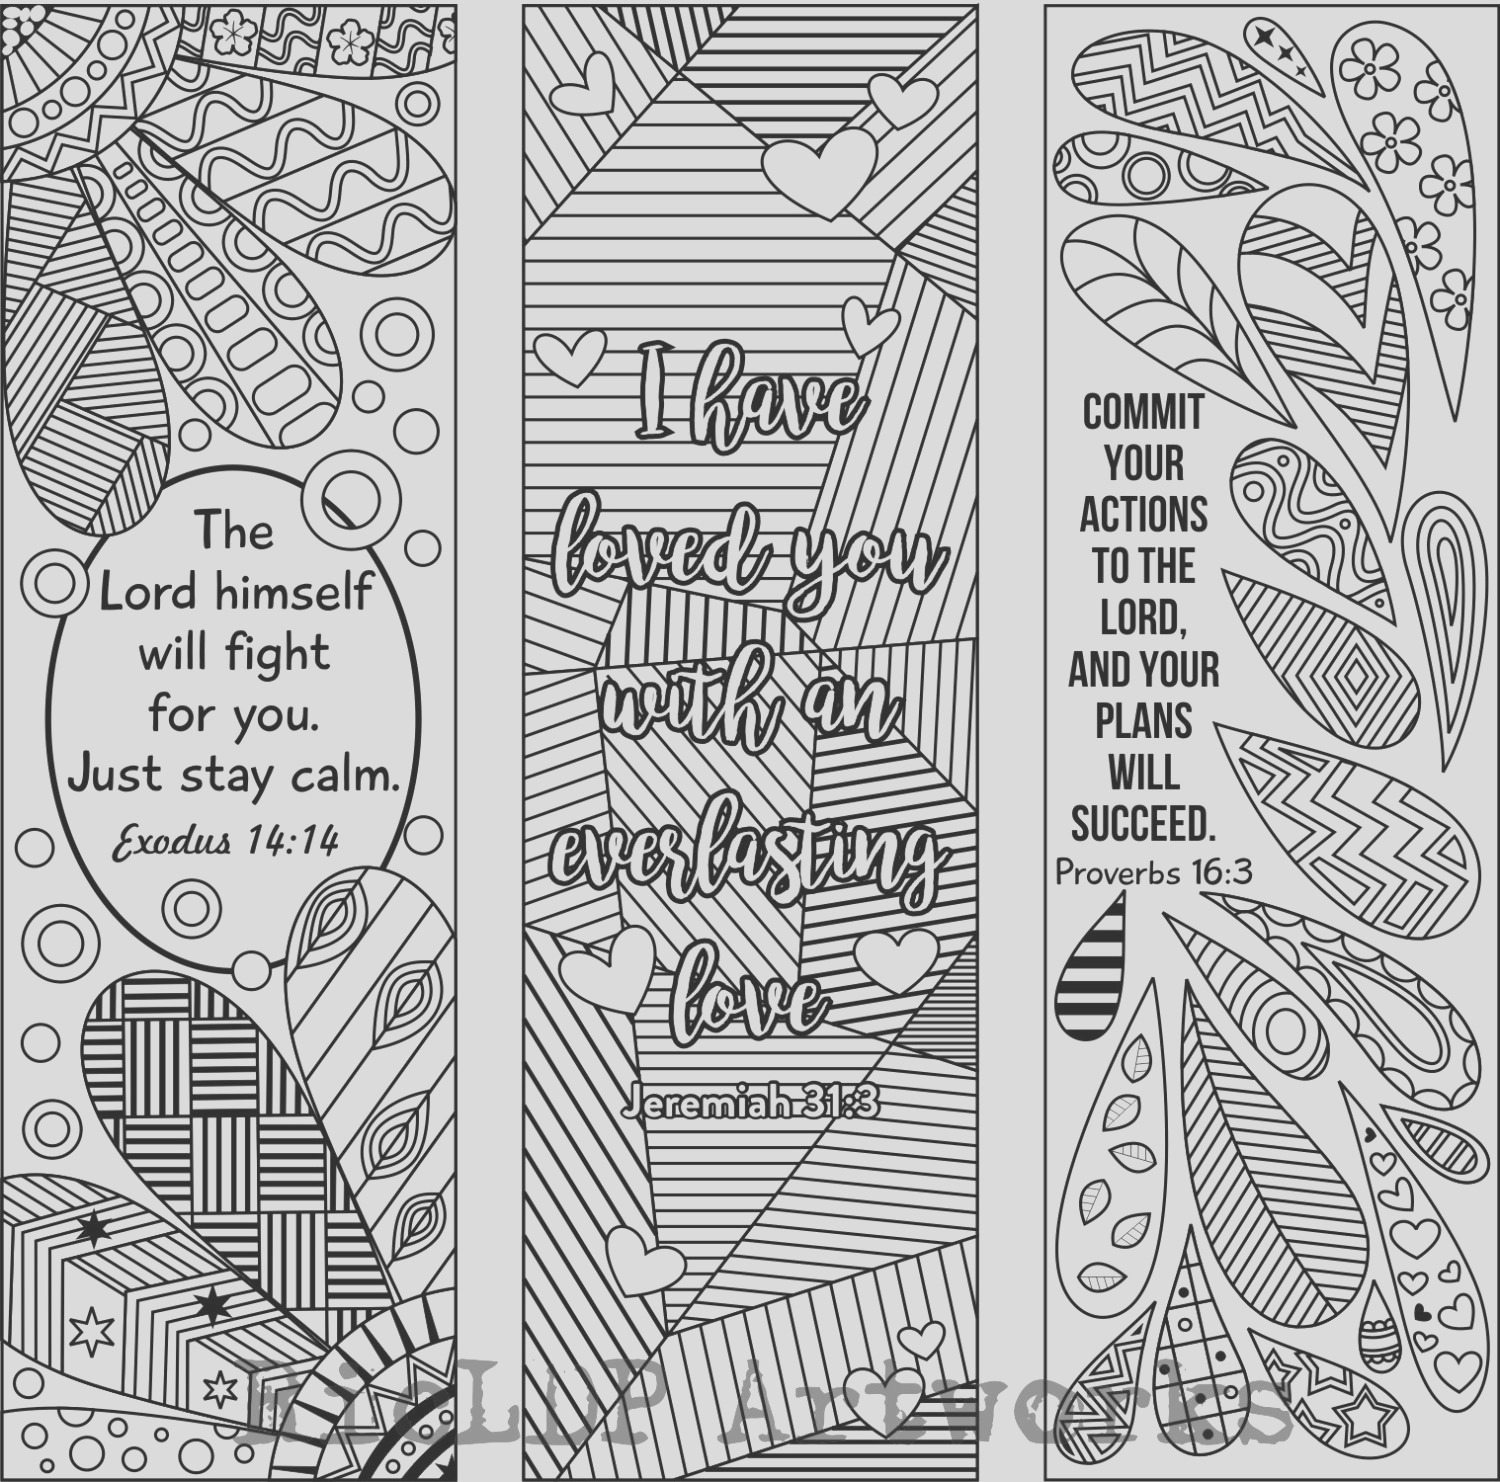 6 bible verse coloring bookmarks plus 3